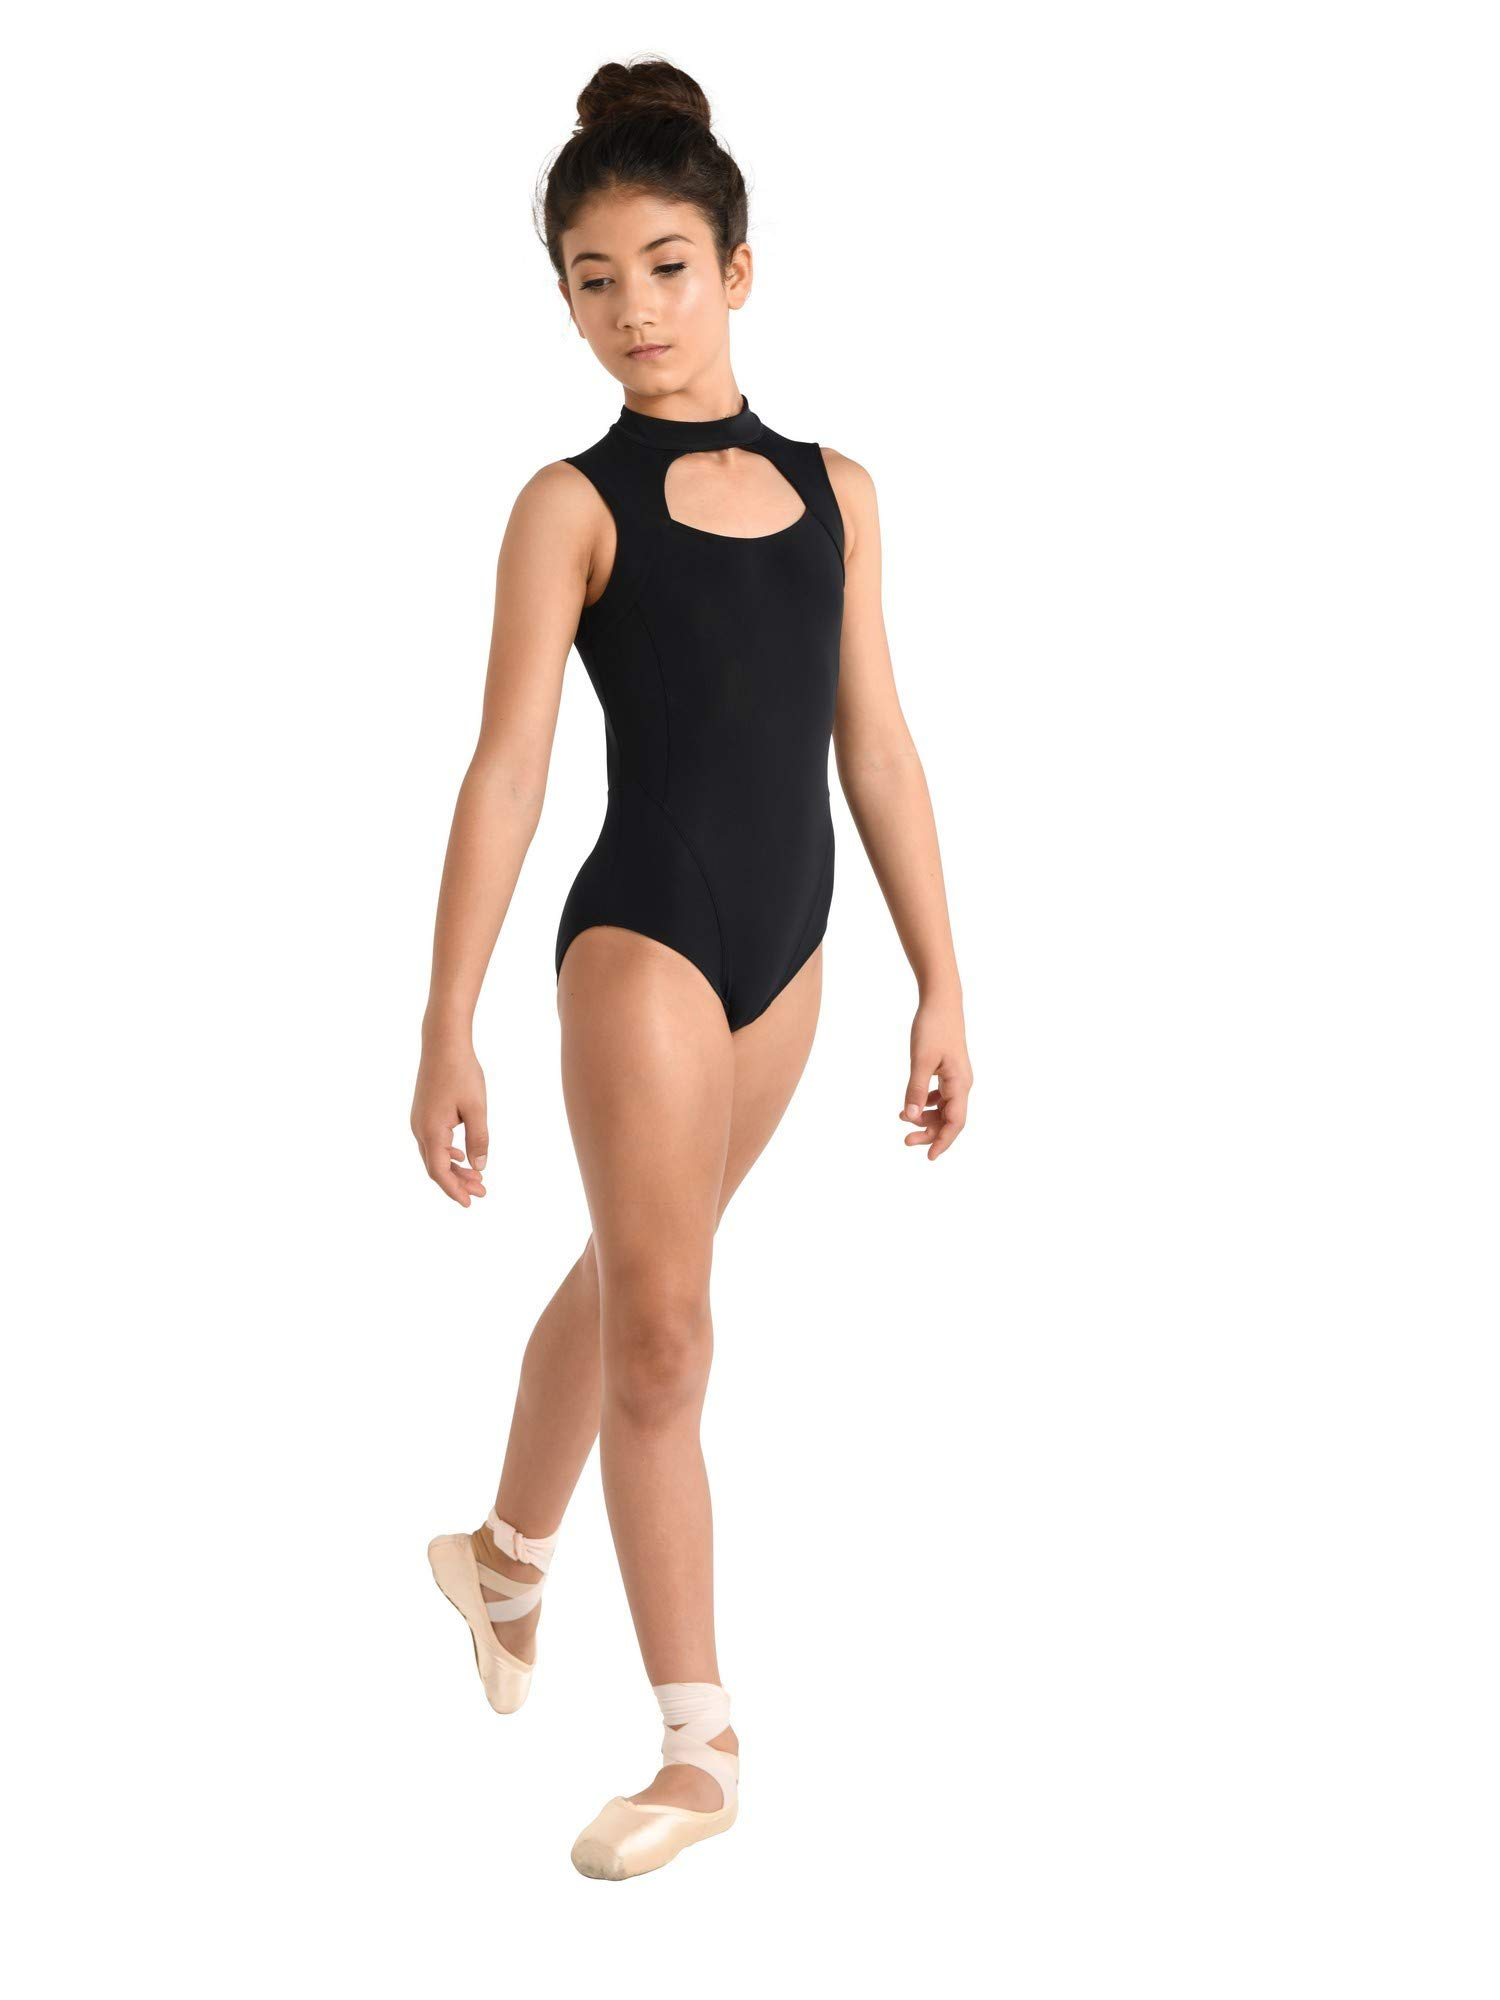 Danshuz Youth Mock Turtleneck Scuba Style Dance Costume Leotard Black 12-14 by DanzNmotion by Danshuz